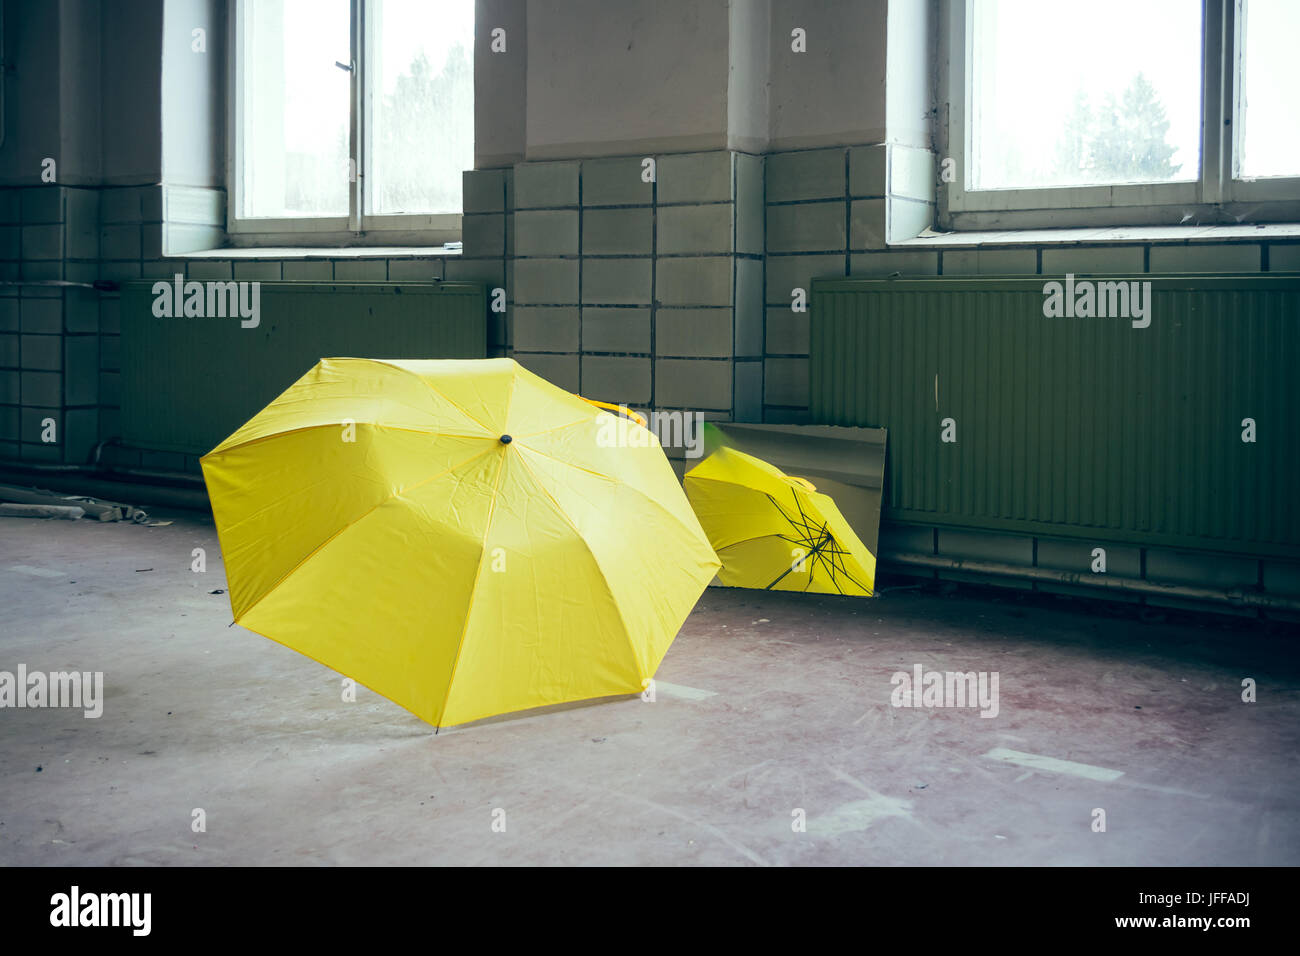 yellow umbrella in front of a mirror - Stock Image